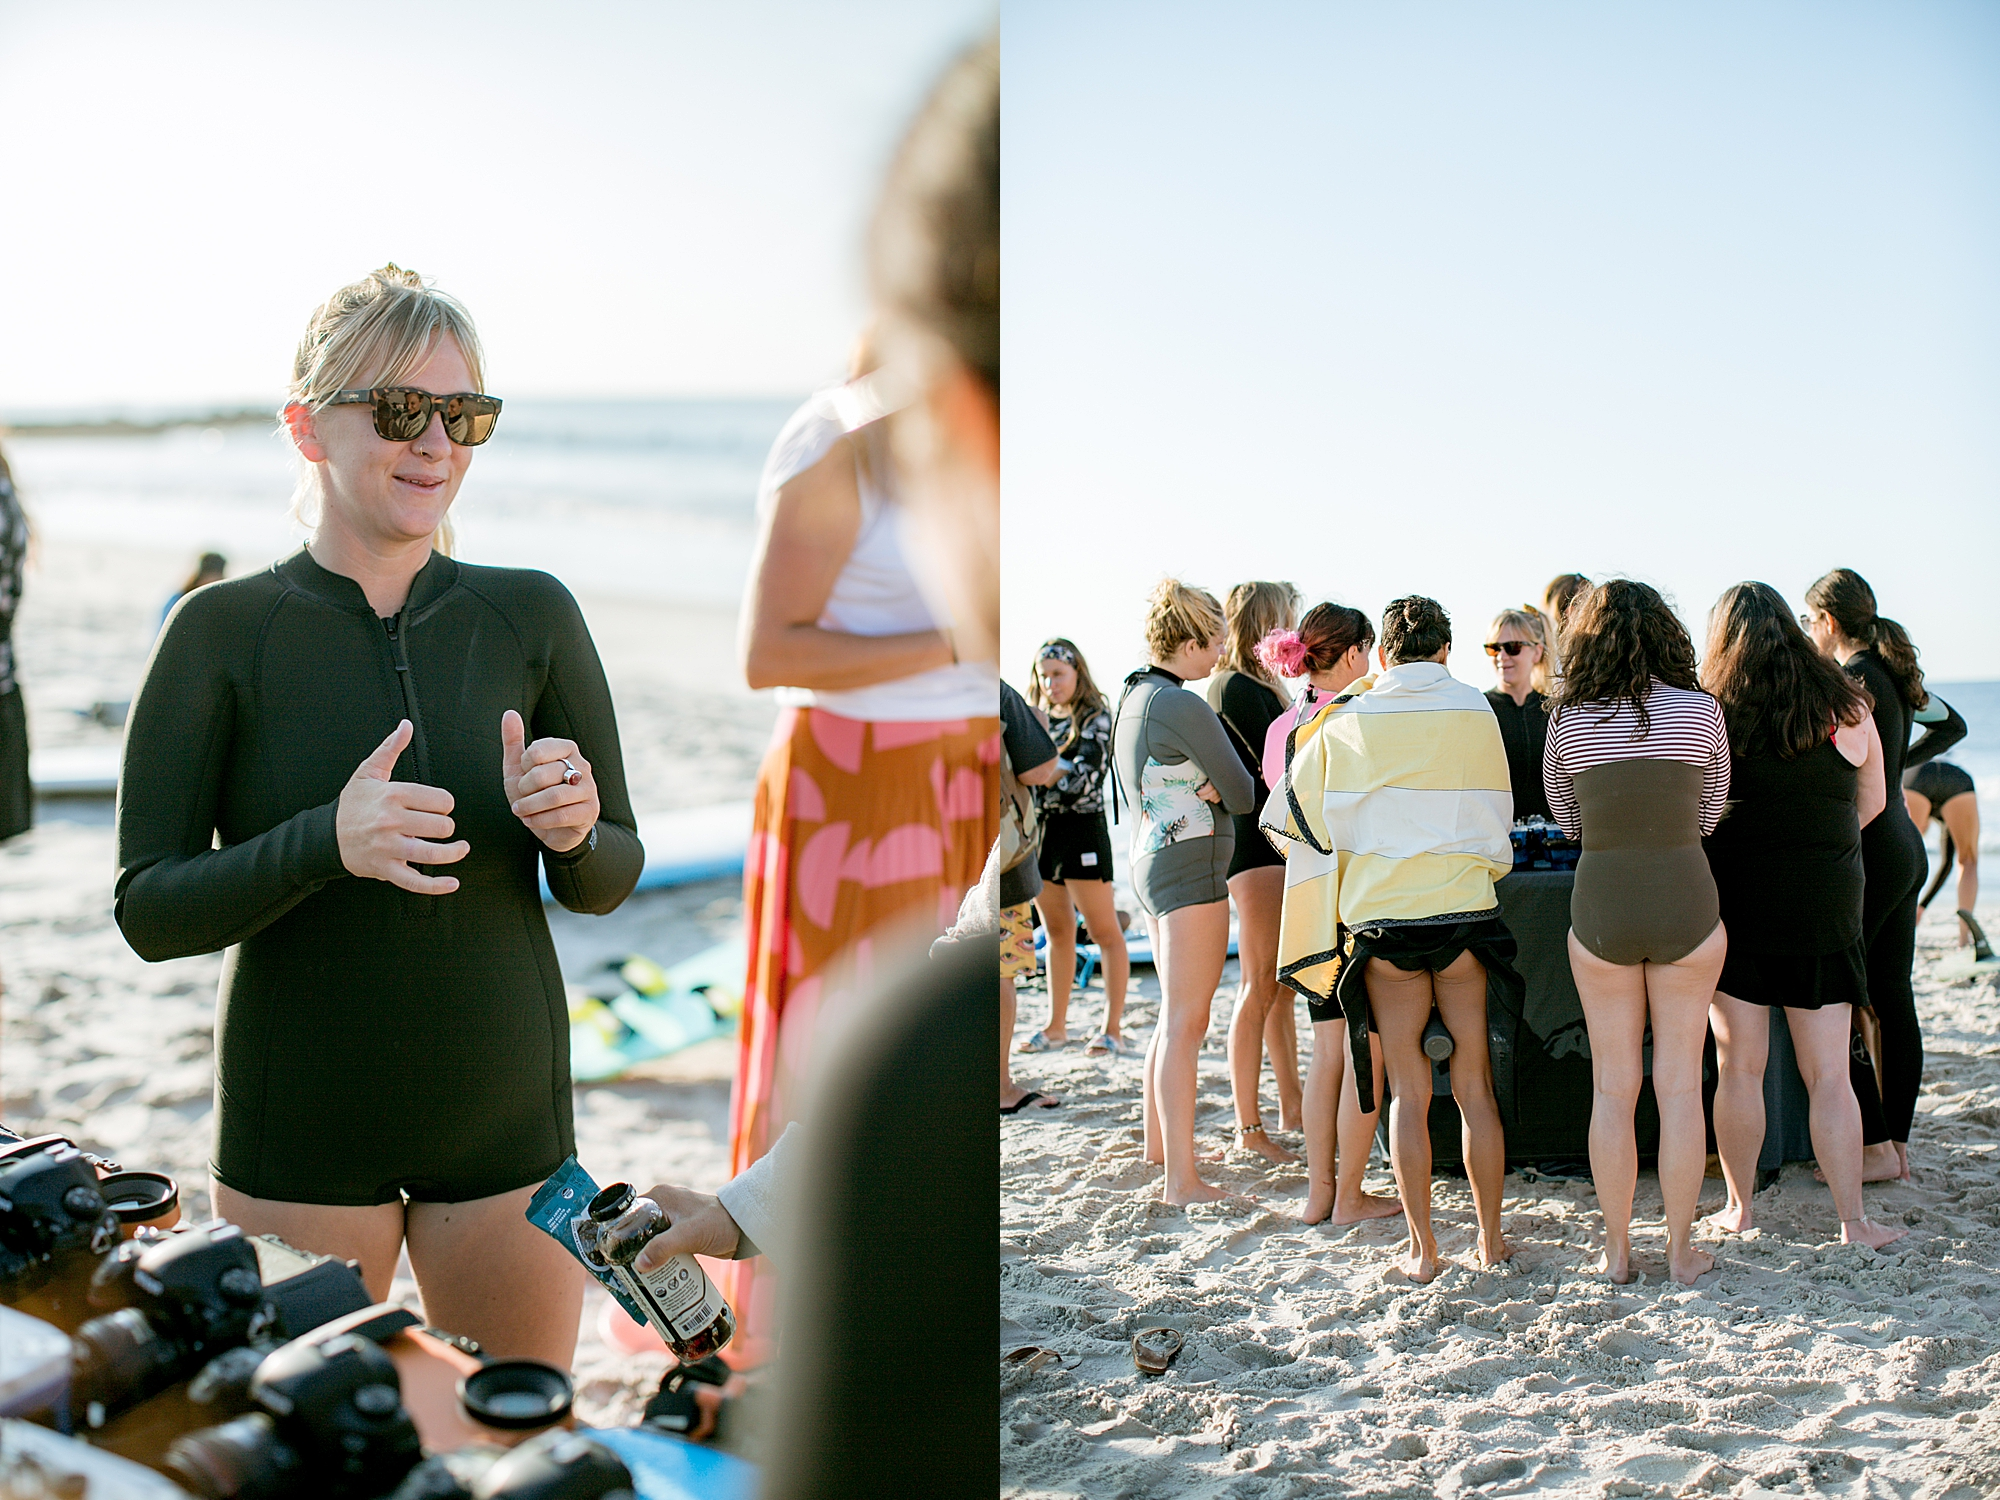 Women's Surf Film Festival - Women's Surf Photography Workshop by Bryanna Bradley - Photographer Kelee Bovelle @keleeb_0007.jpg